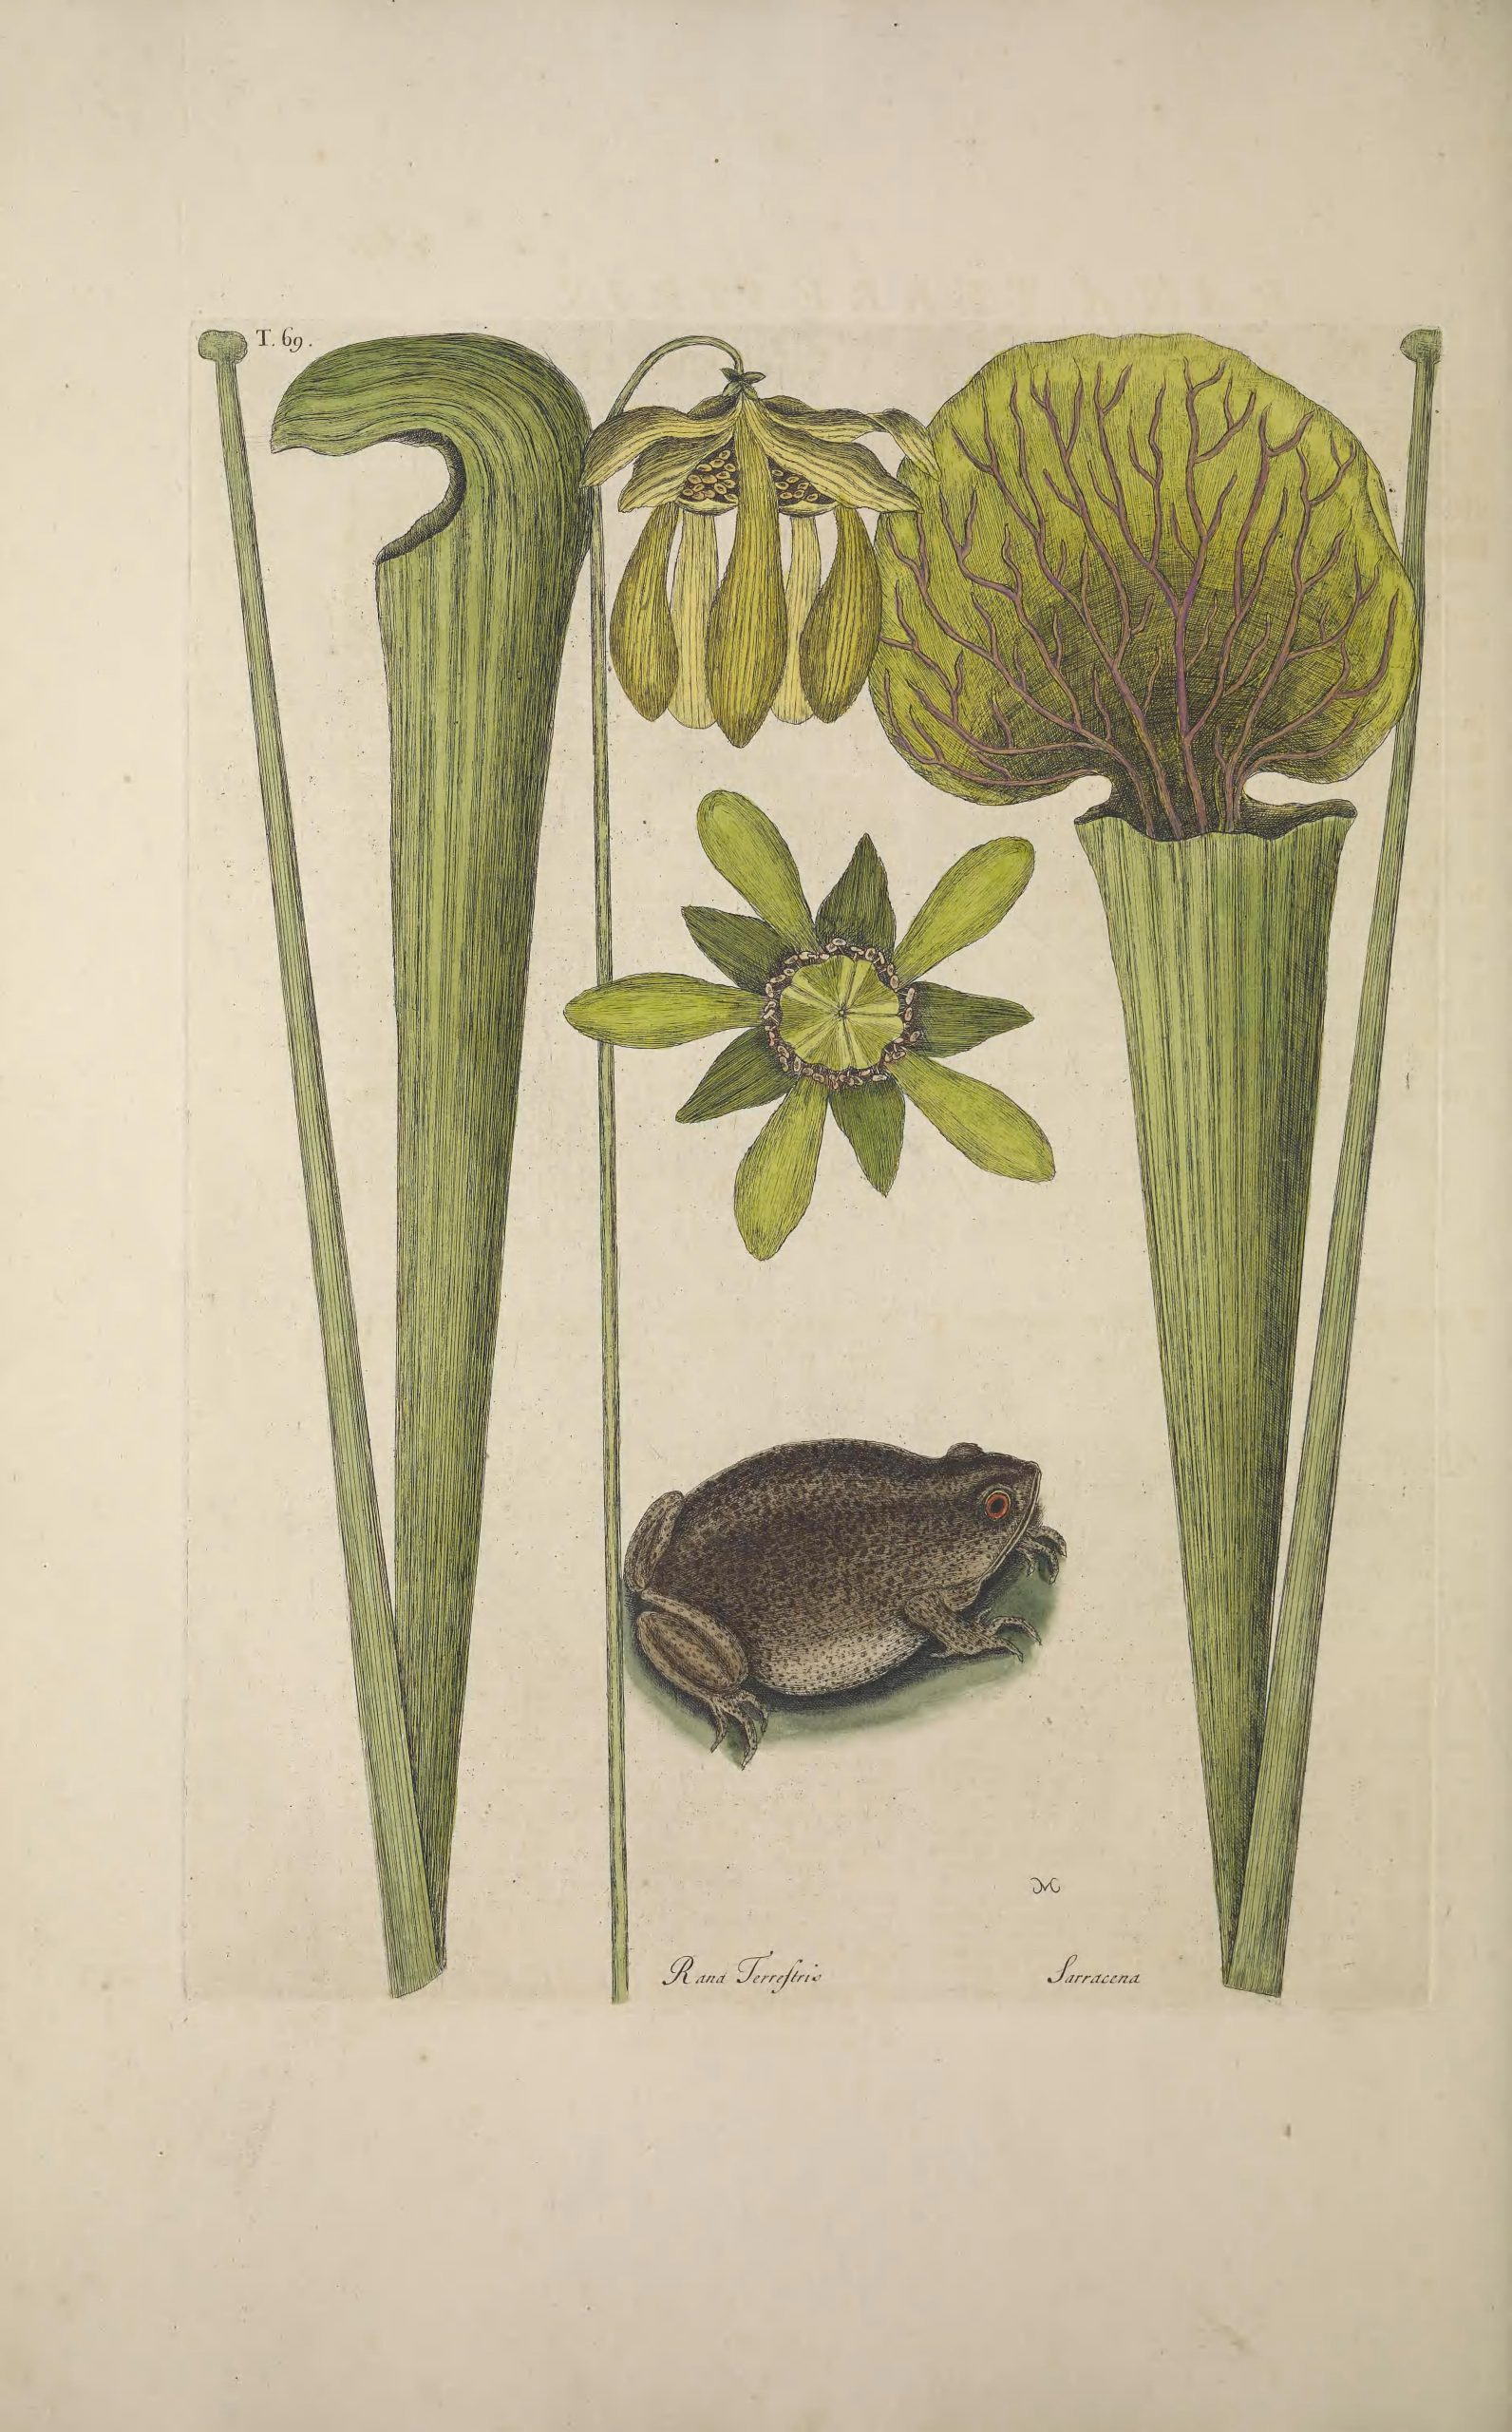 Full color sketch of a pitcher plant including modified leaves and flowering parts, with red-eyed frog beneath